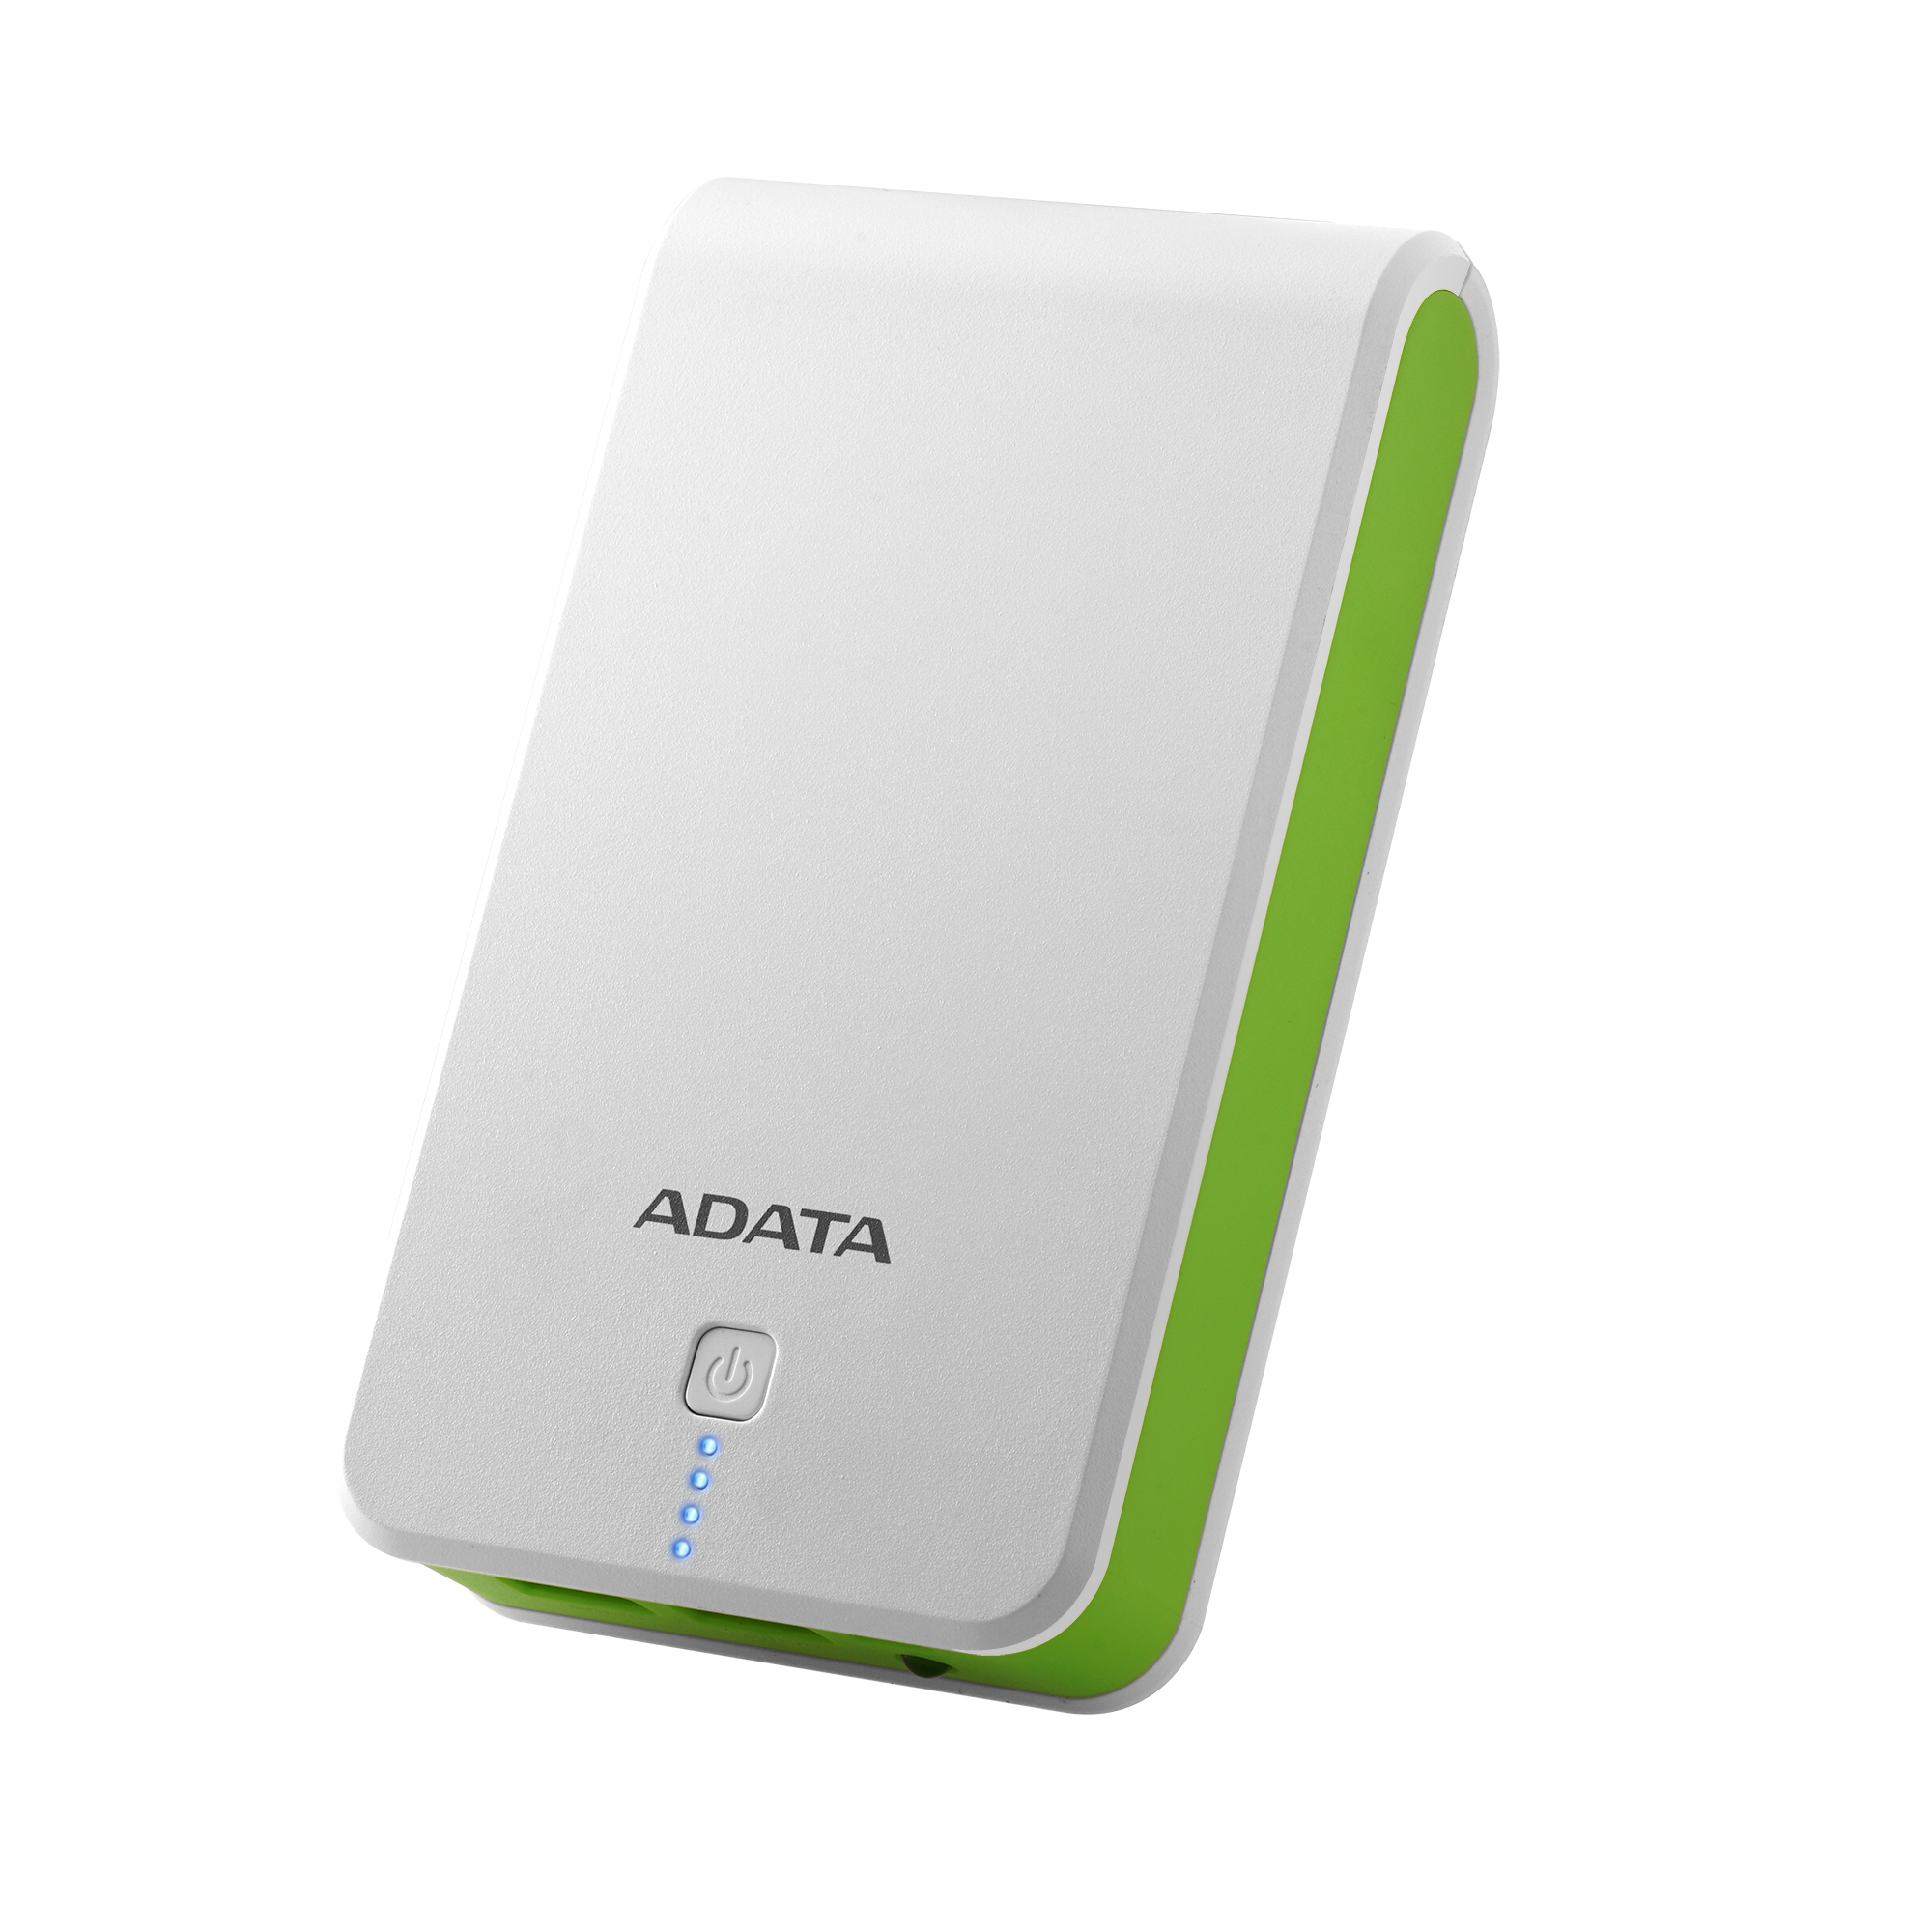 ADATA P16750 Power Bank 16750mAh bílá